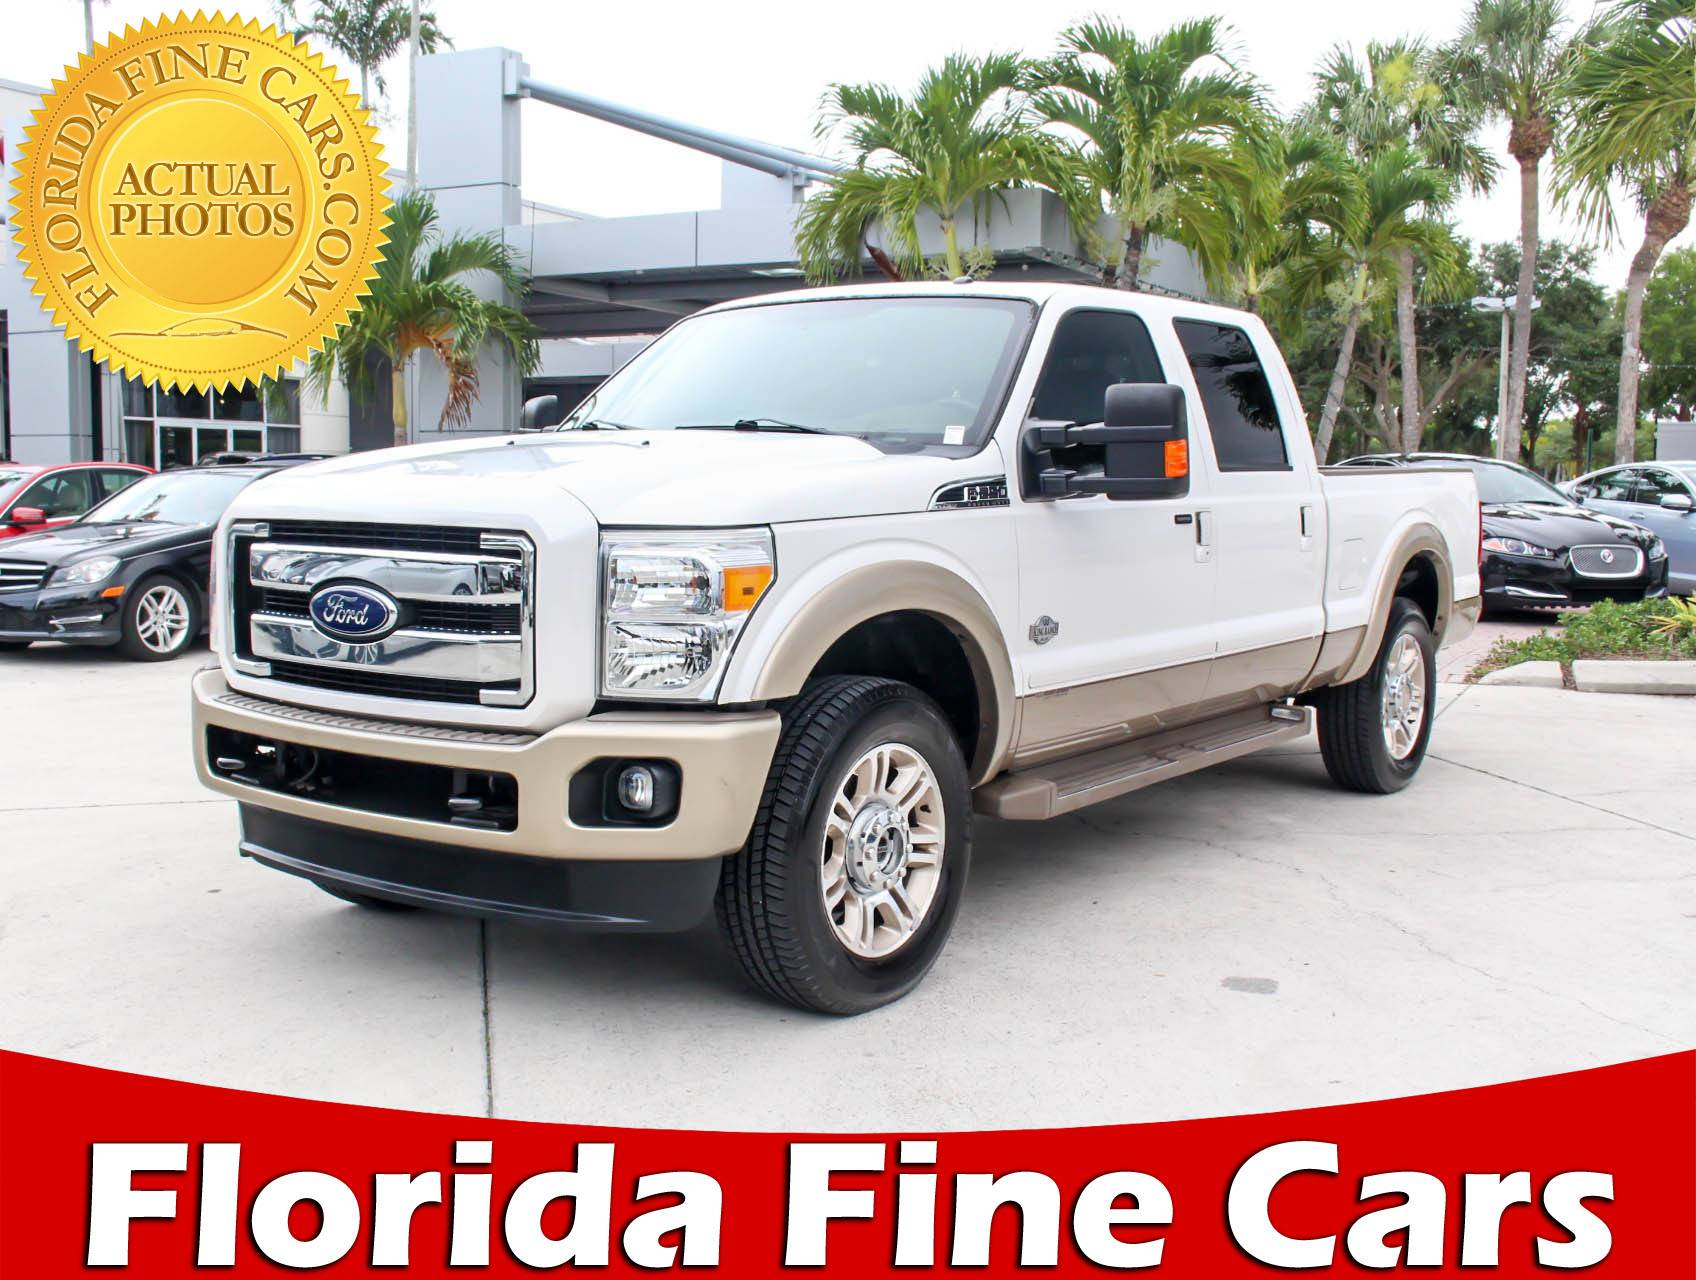 Used 2014 FORD F 250 King Ranch Lariat Truck for sale in WEST PALM